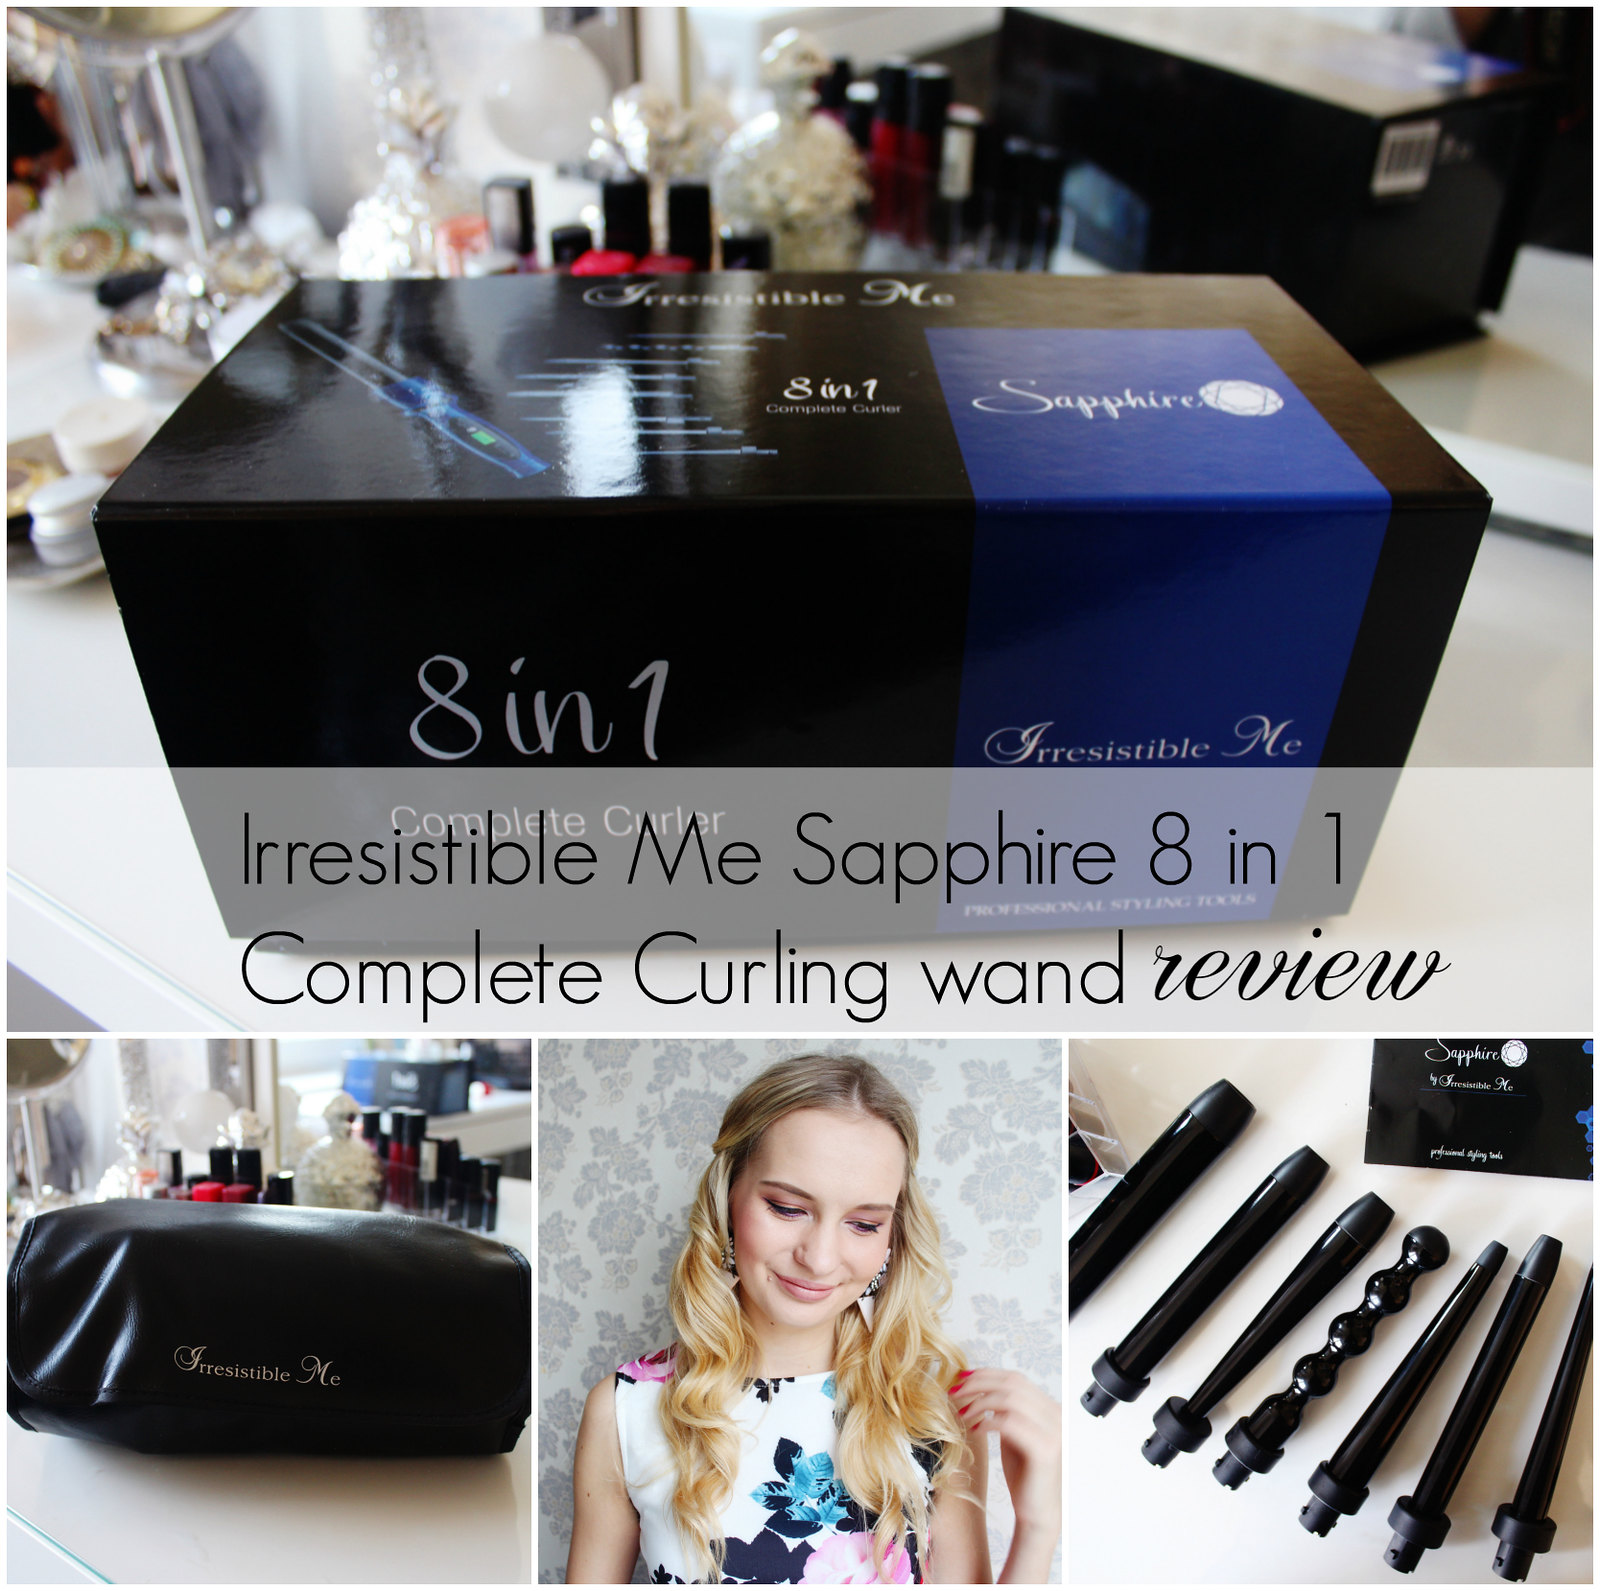 Irresistible Me Complete curling wand review